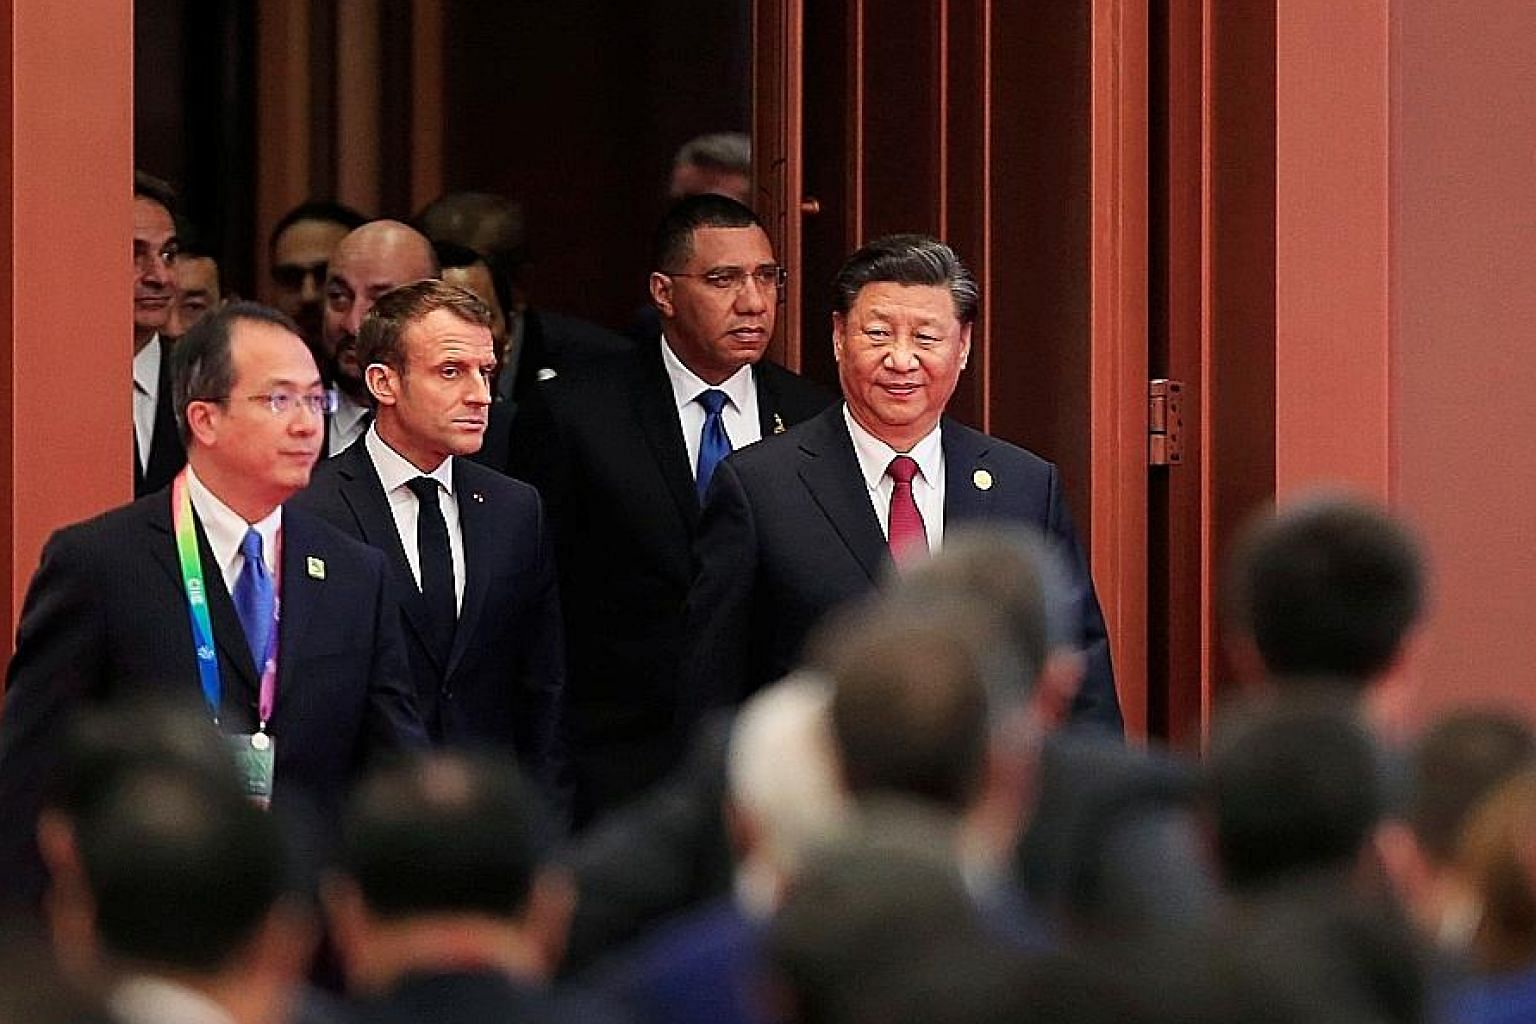 Chinese President Xi Jinping with French President Emmanuel Macron and others at the China International Import Expo in Shanghai on Nov 5 last year. While it may look like China has had to make more concessions for the US-China phase one deal, it cou